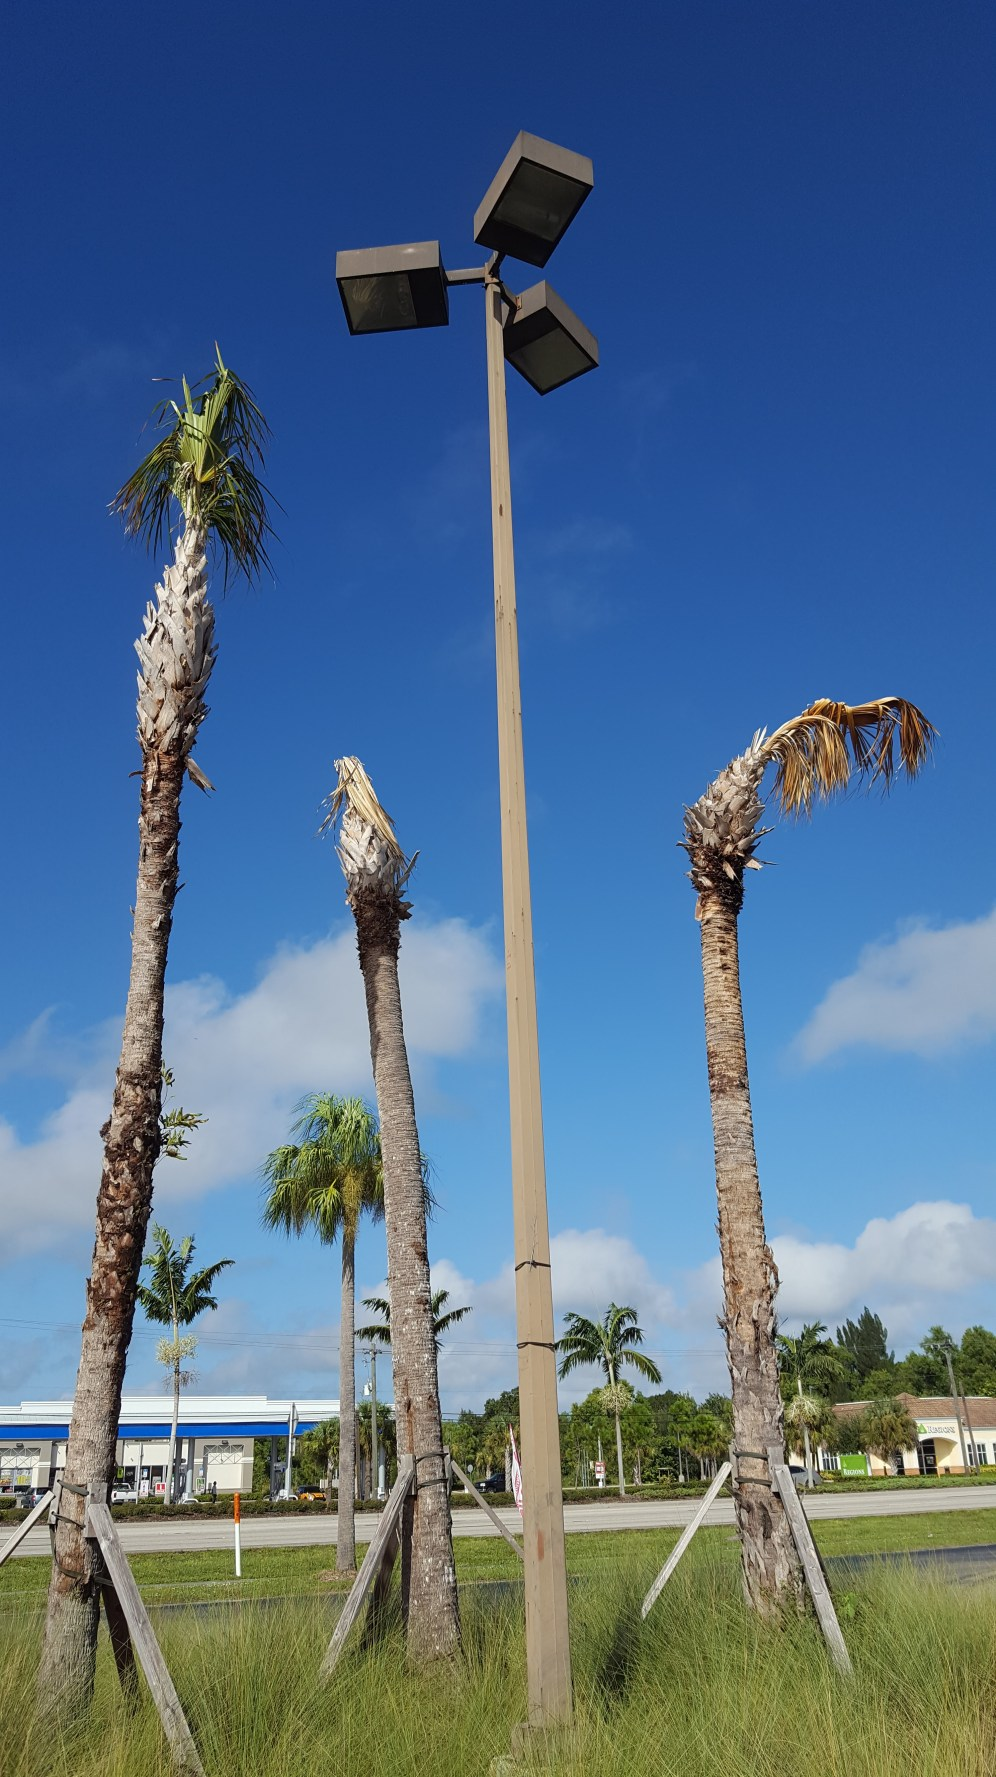 The Cabbage palm transplants easily, when done correctly.